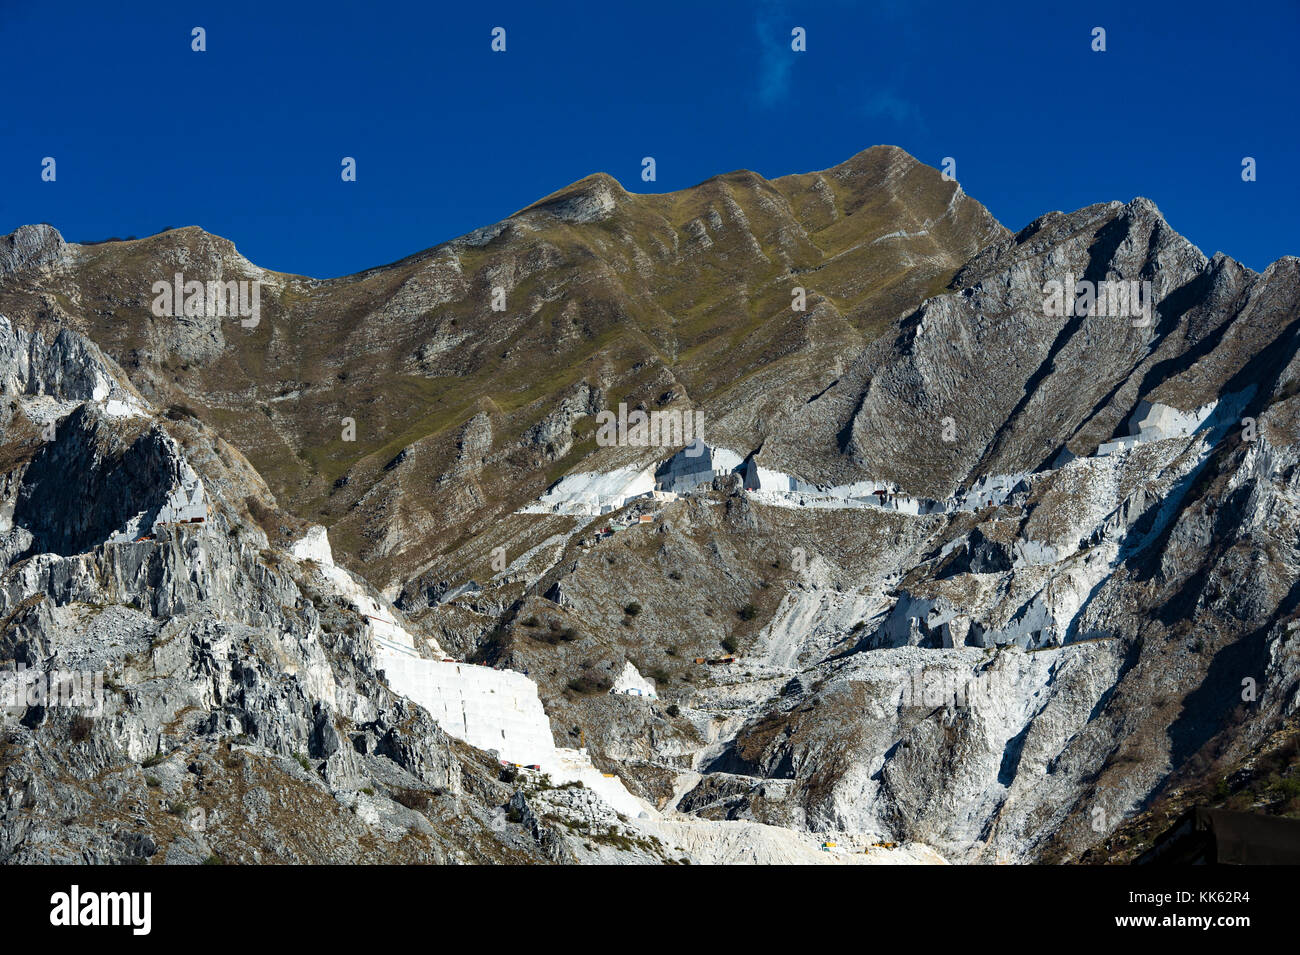 Europe. Italy. Liguria. Carrara. The white marble quarries - Stock Image